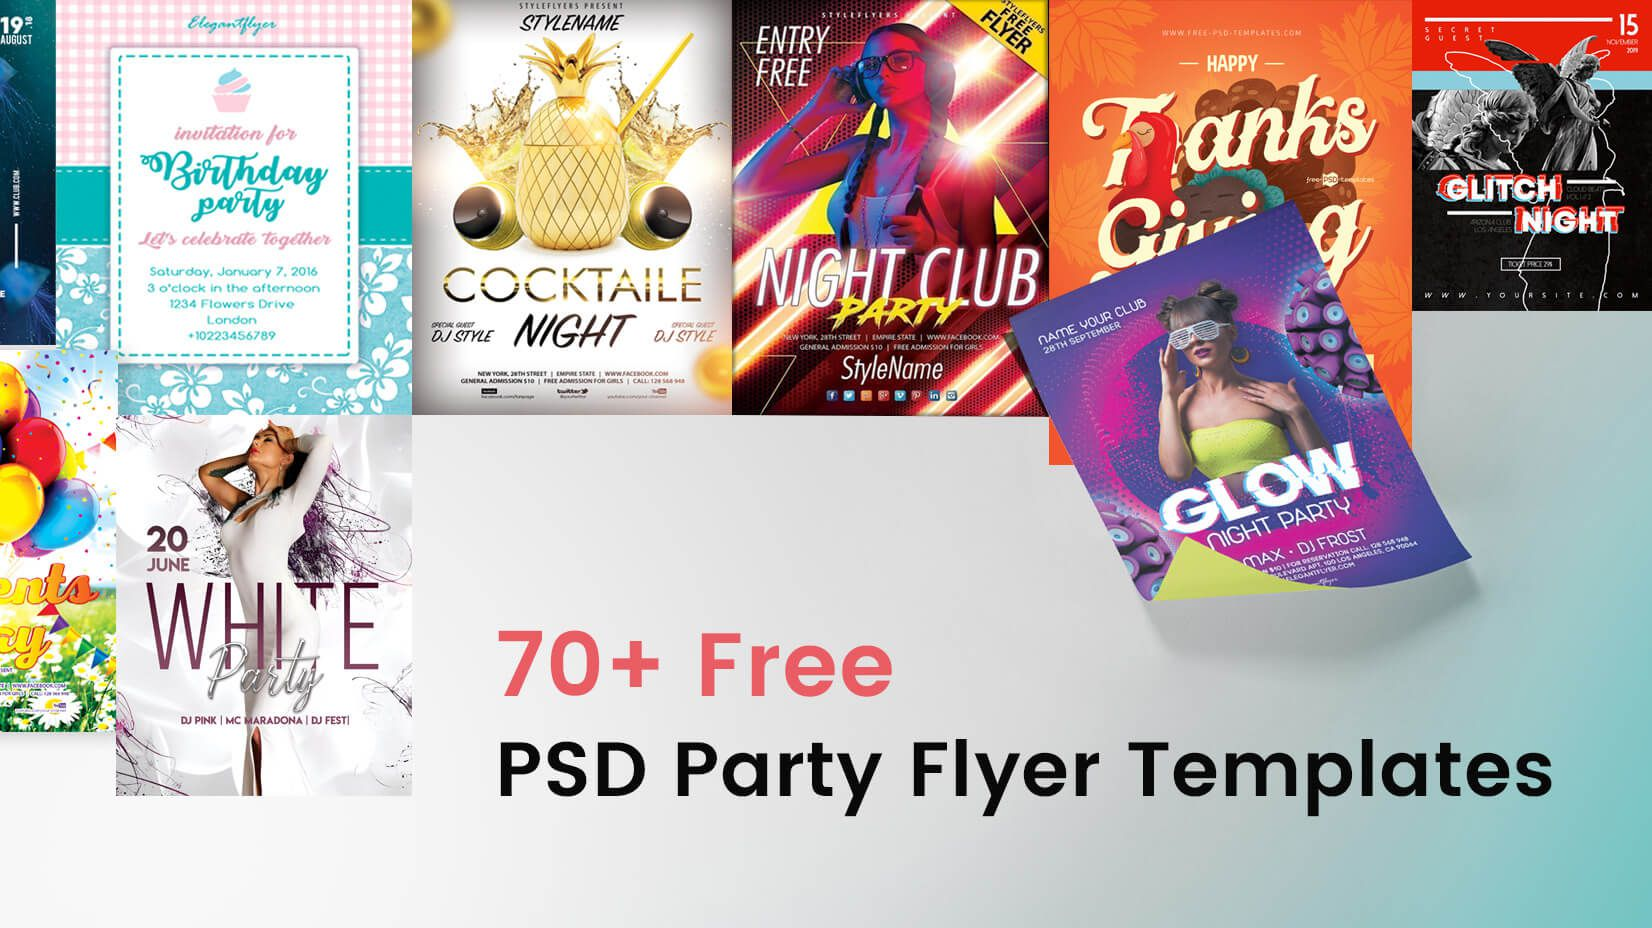 006 Wonderful Free Psd Poster Template Highest Clarity  Templates Restaurant Photoshop DownloadFull